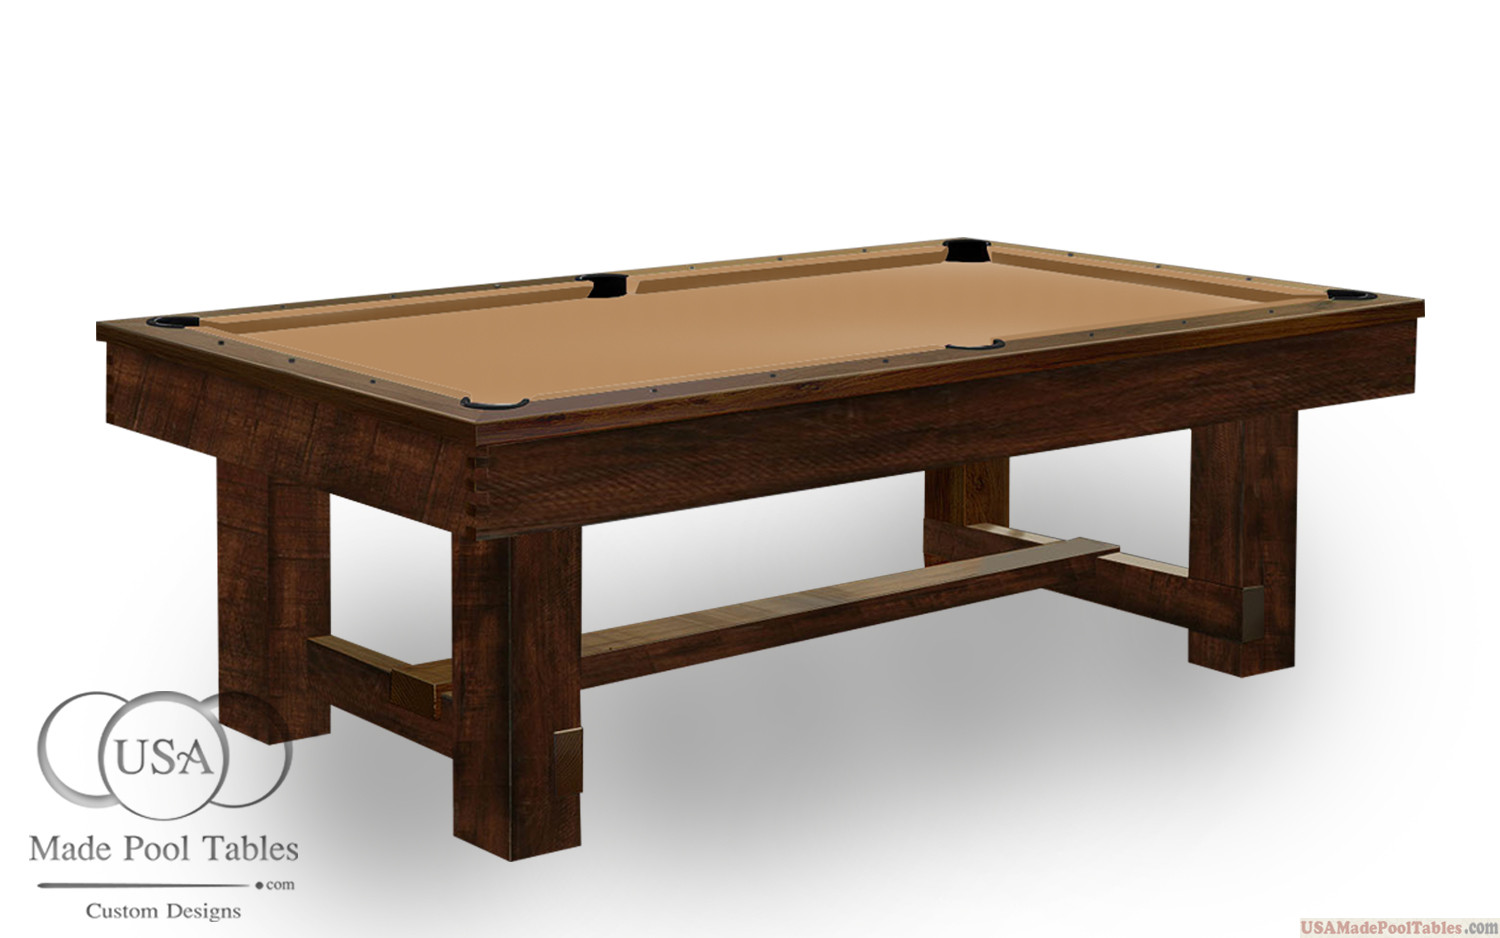 RUSTIC POOL TABLES : POOL TABLE